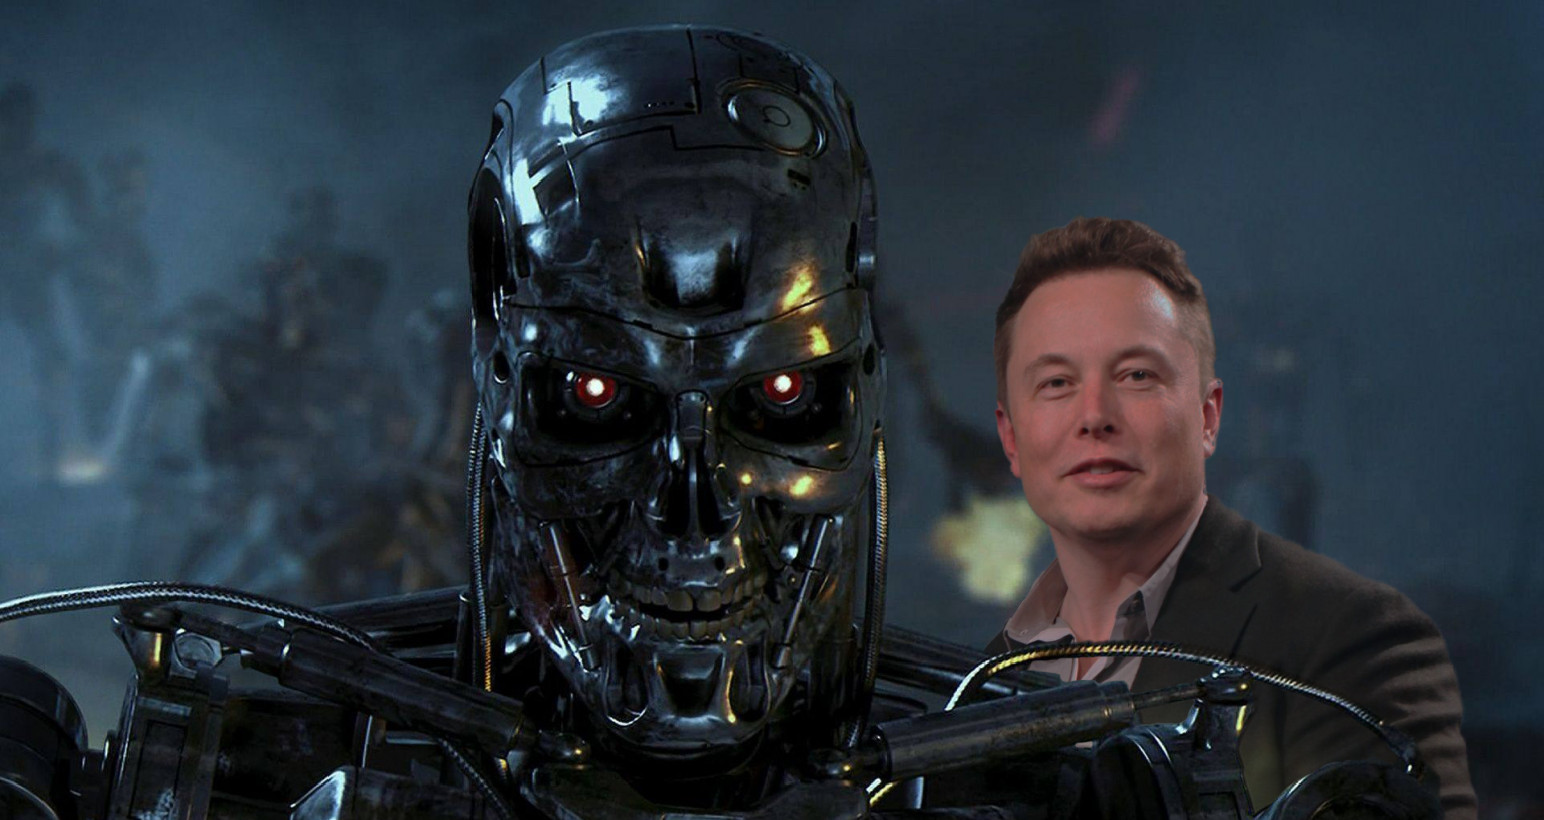 Elon Musk basically confirms AI is coming to eradicate the human race